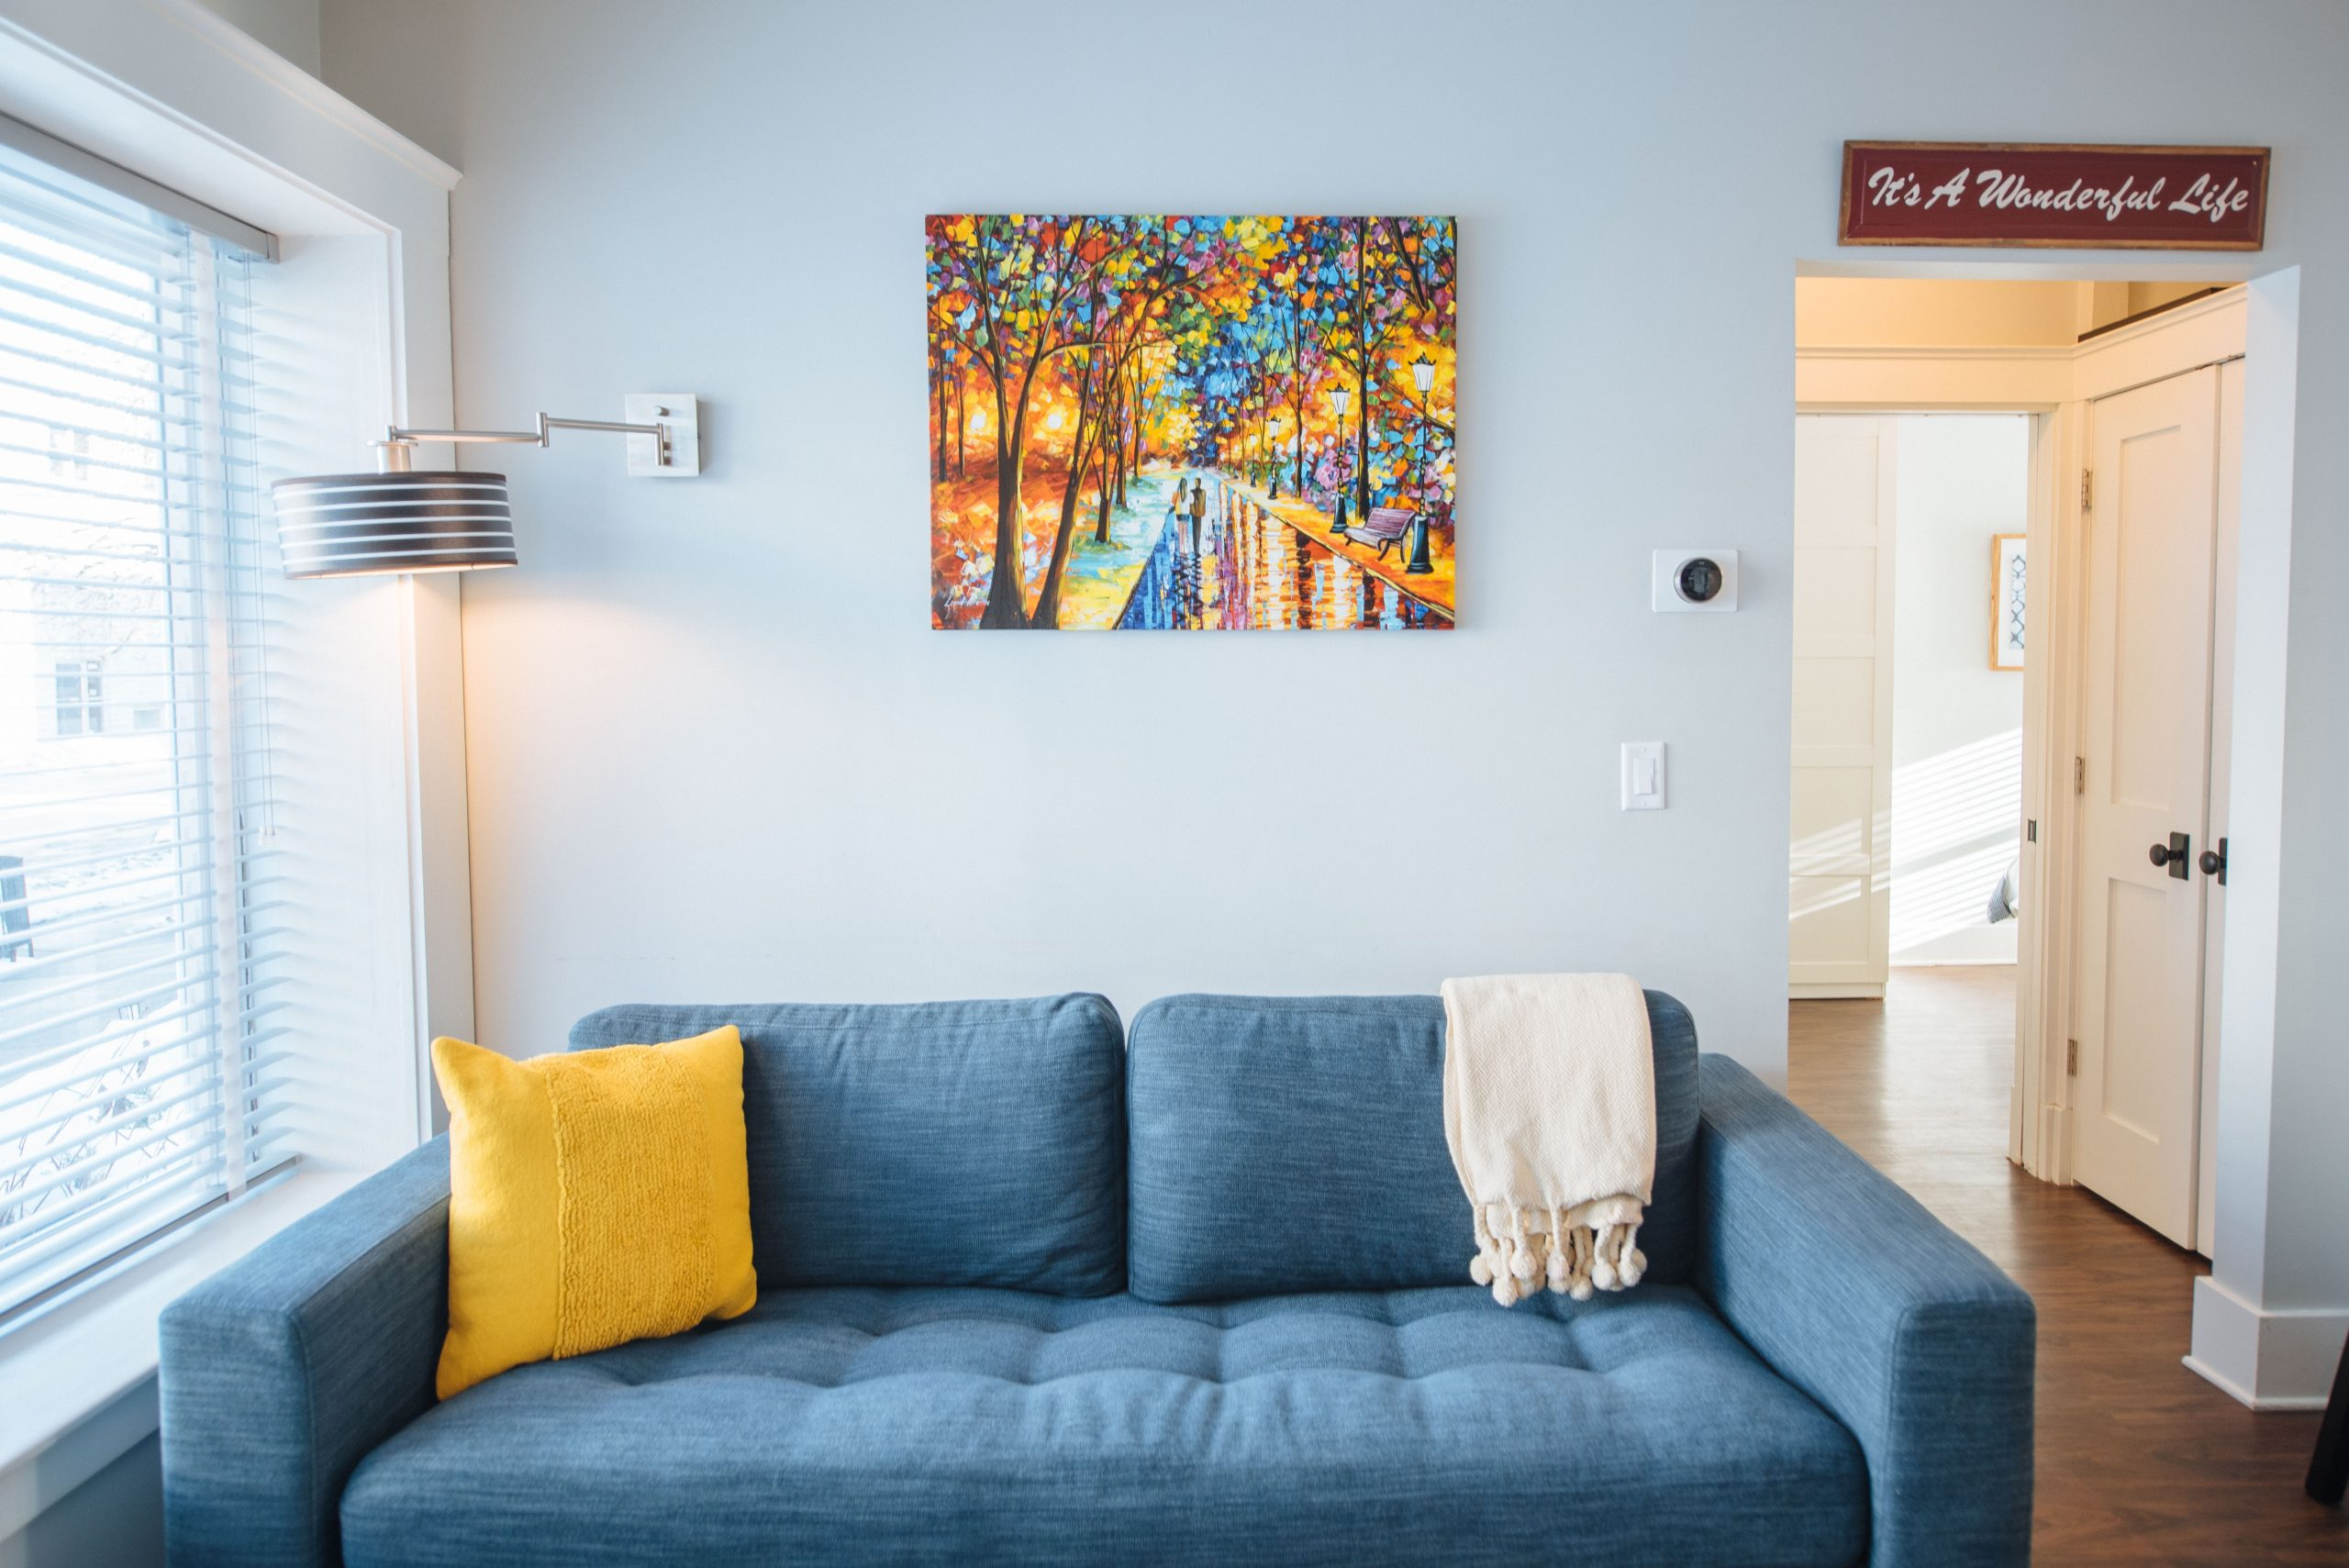 Staycation Ideas with DoCo Vacation Rentals